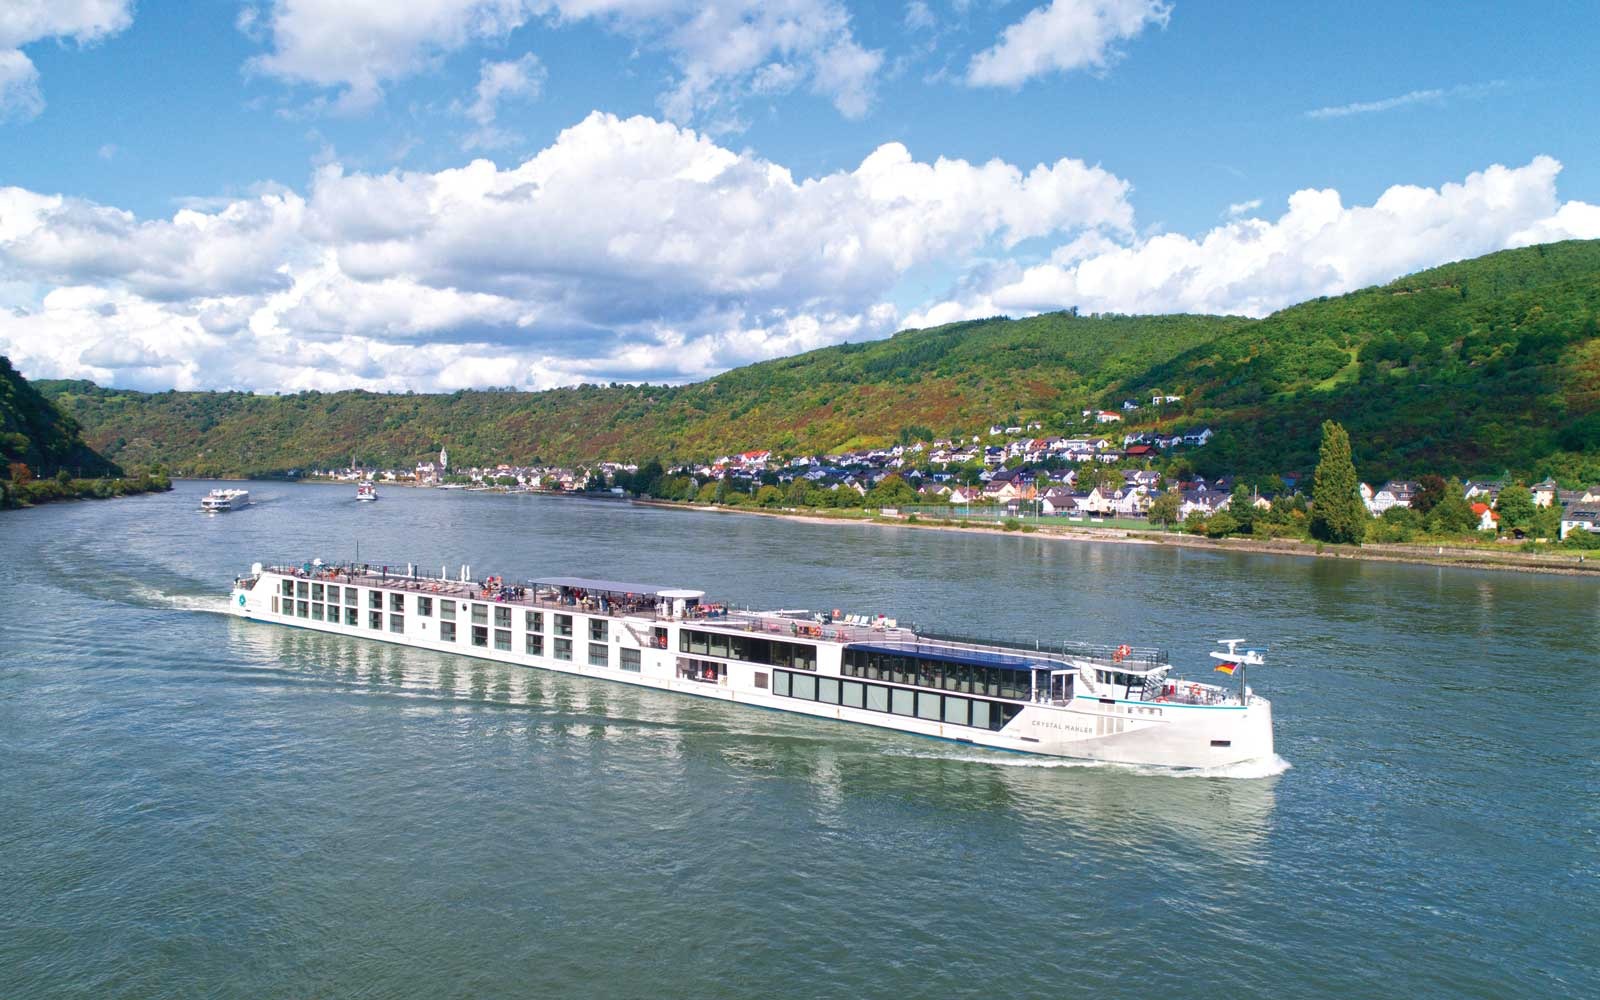 Crystal Mahler river cruise ship